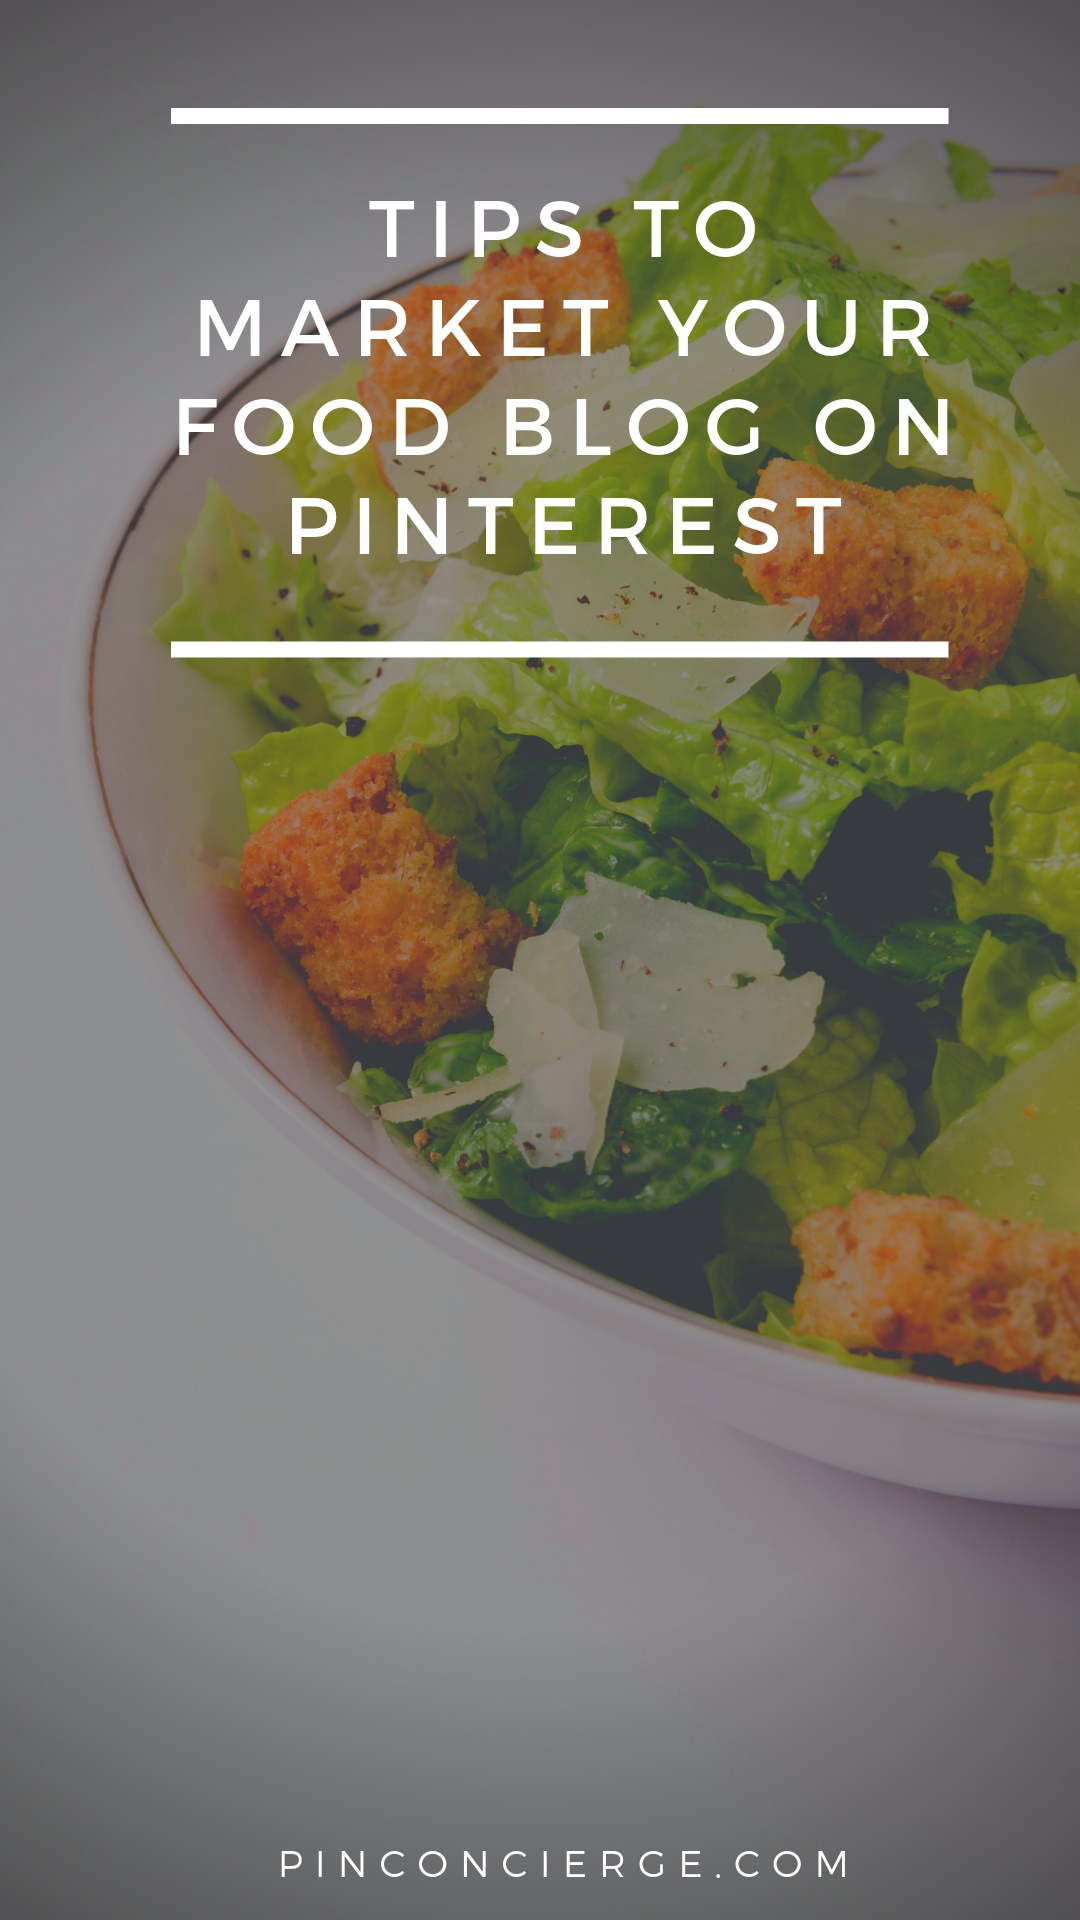 Tips for food bloggers looking to get more traffic from their pinterest accounts on the pin conicerge podcast.  #foodbloggin #pinterestforbloggers